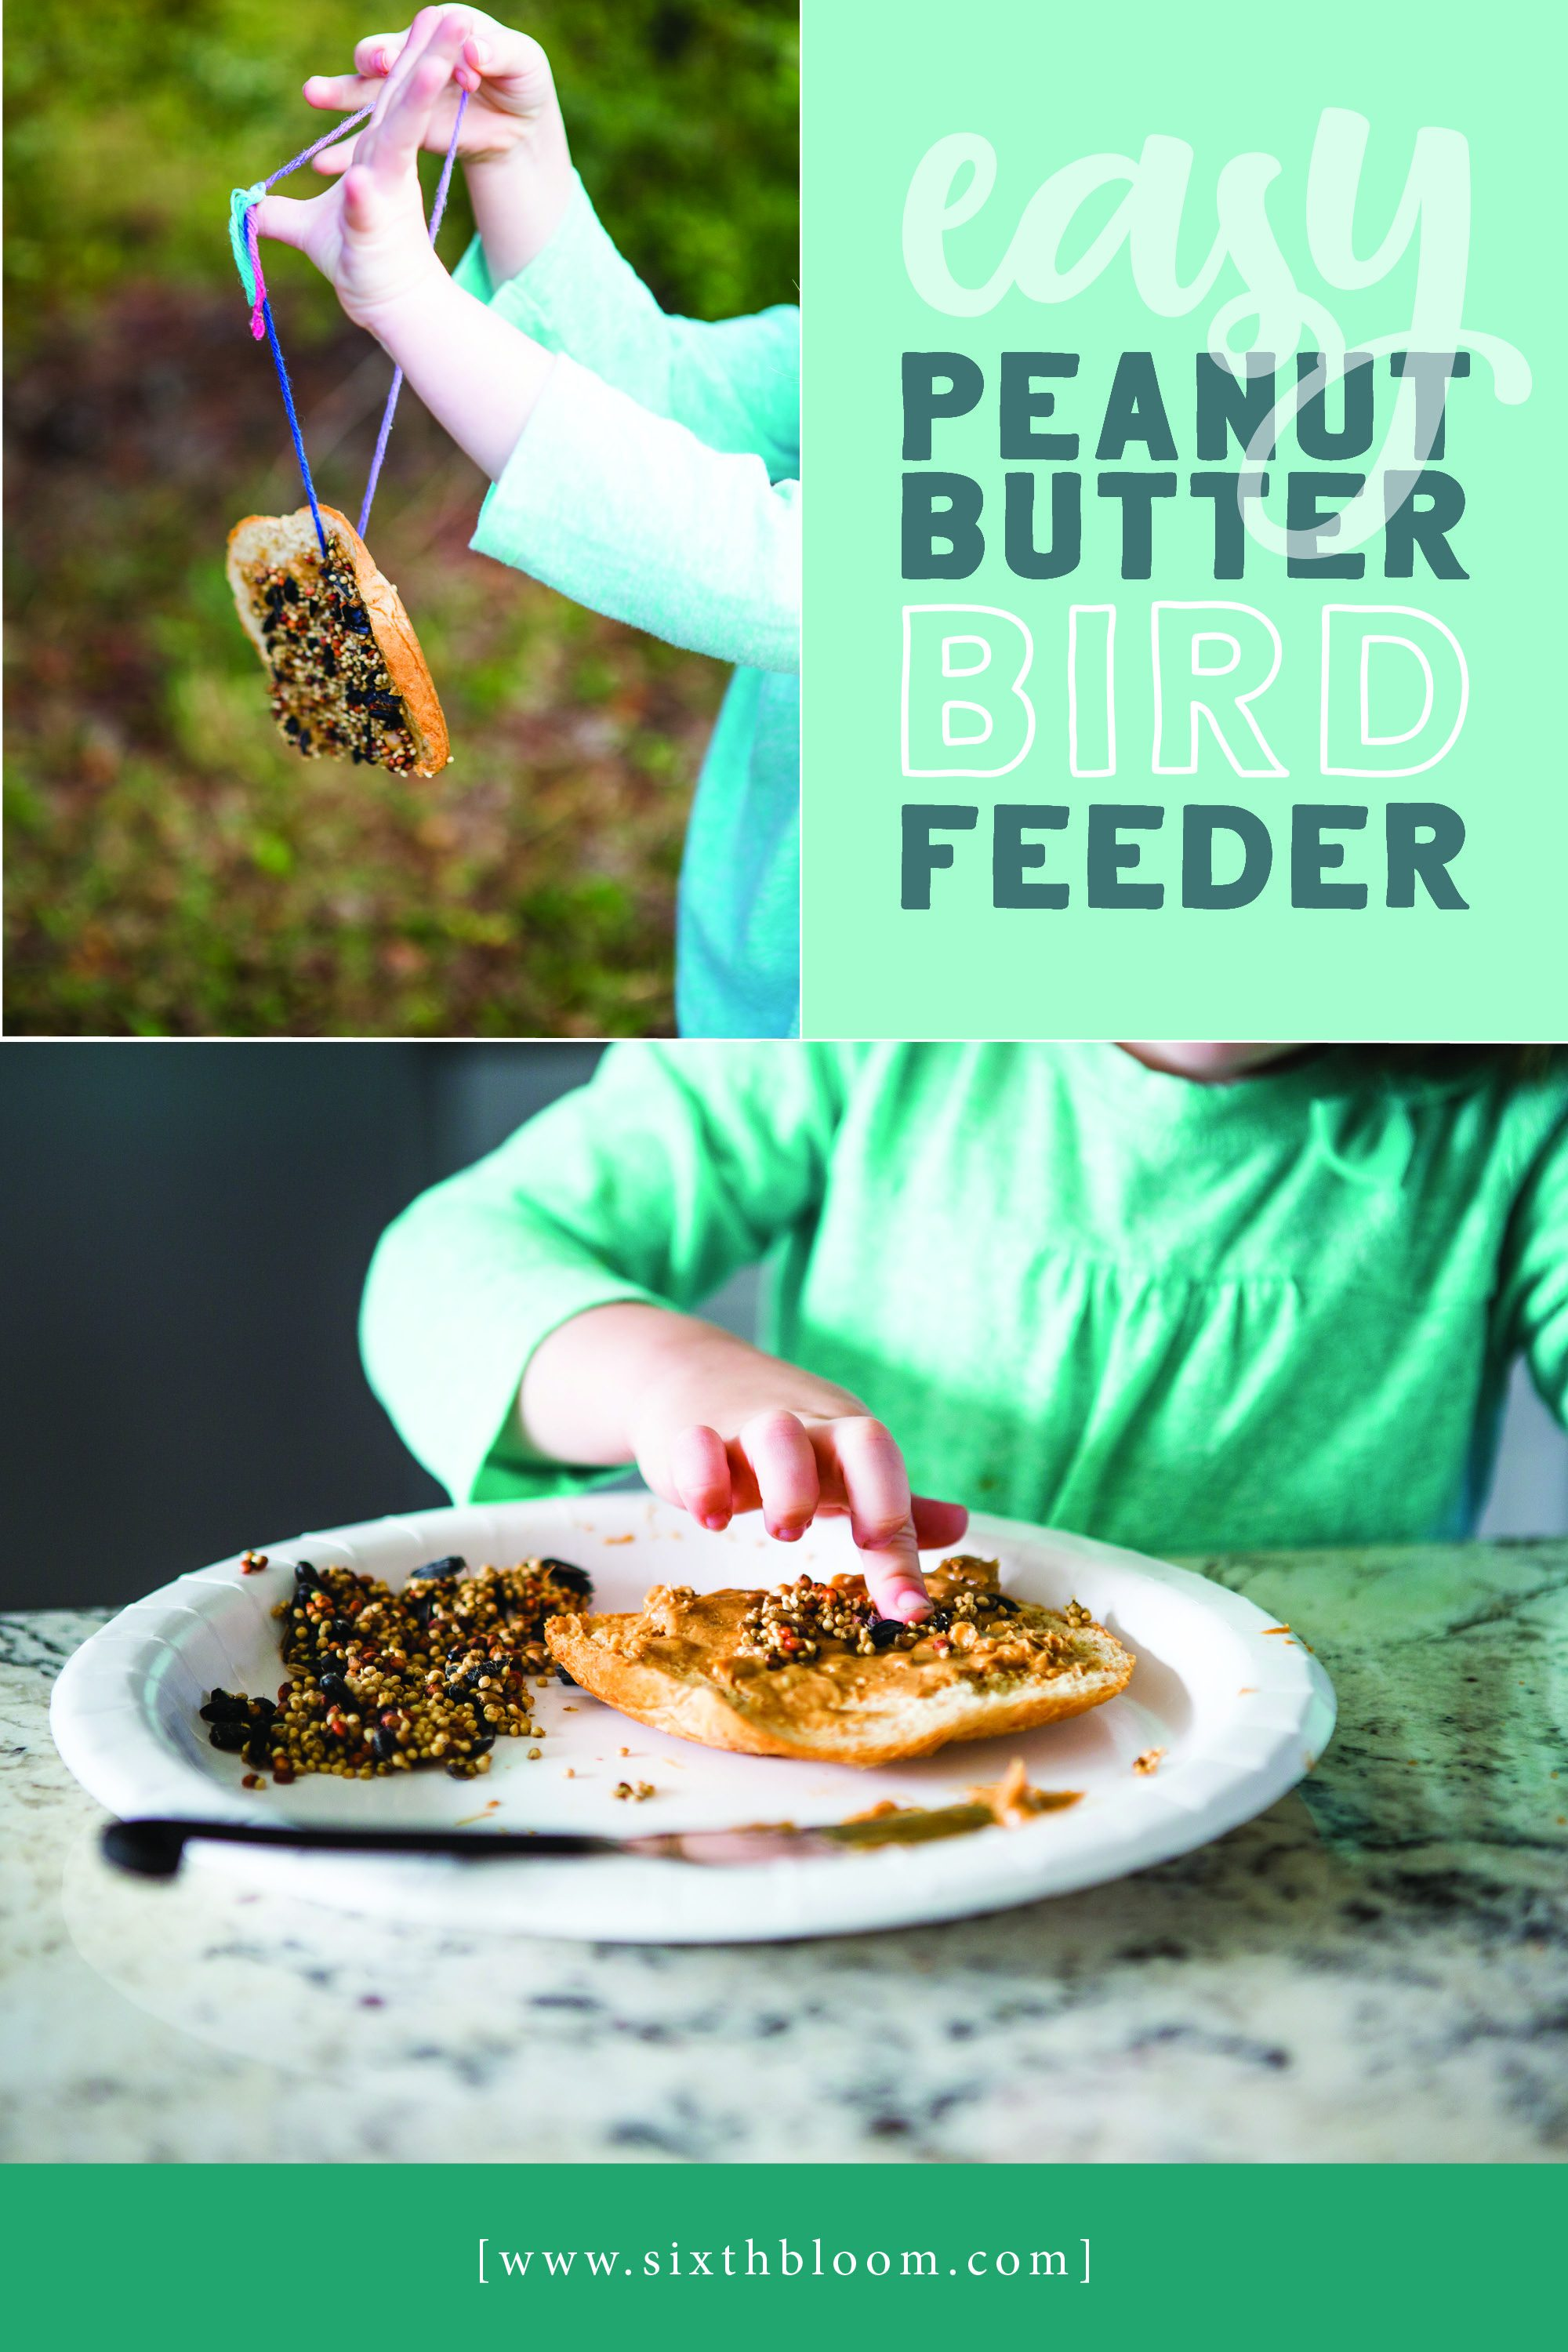 Peanut butter bird feeder for kids to make